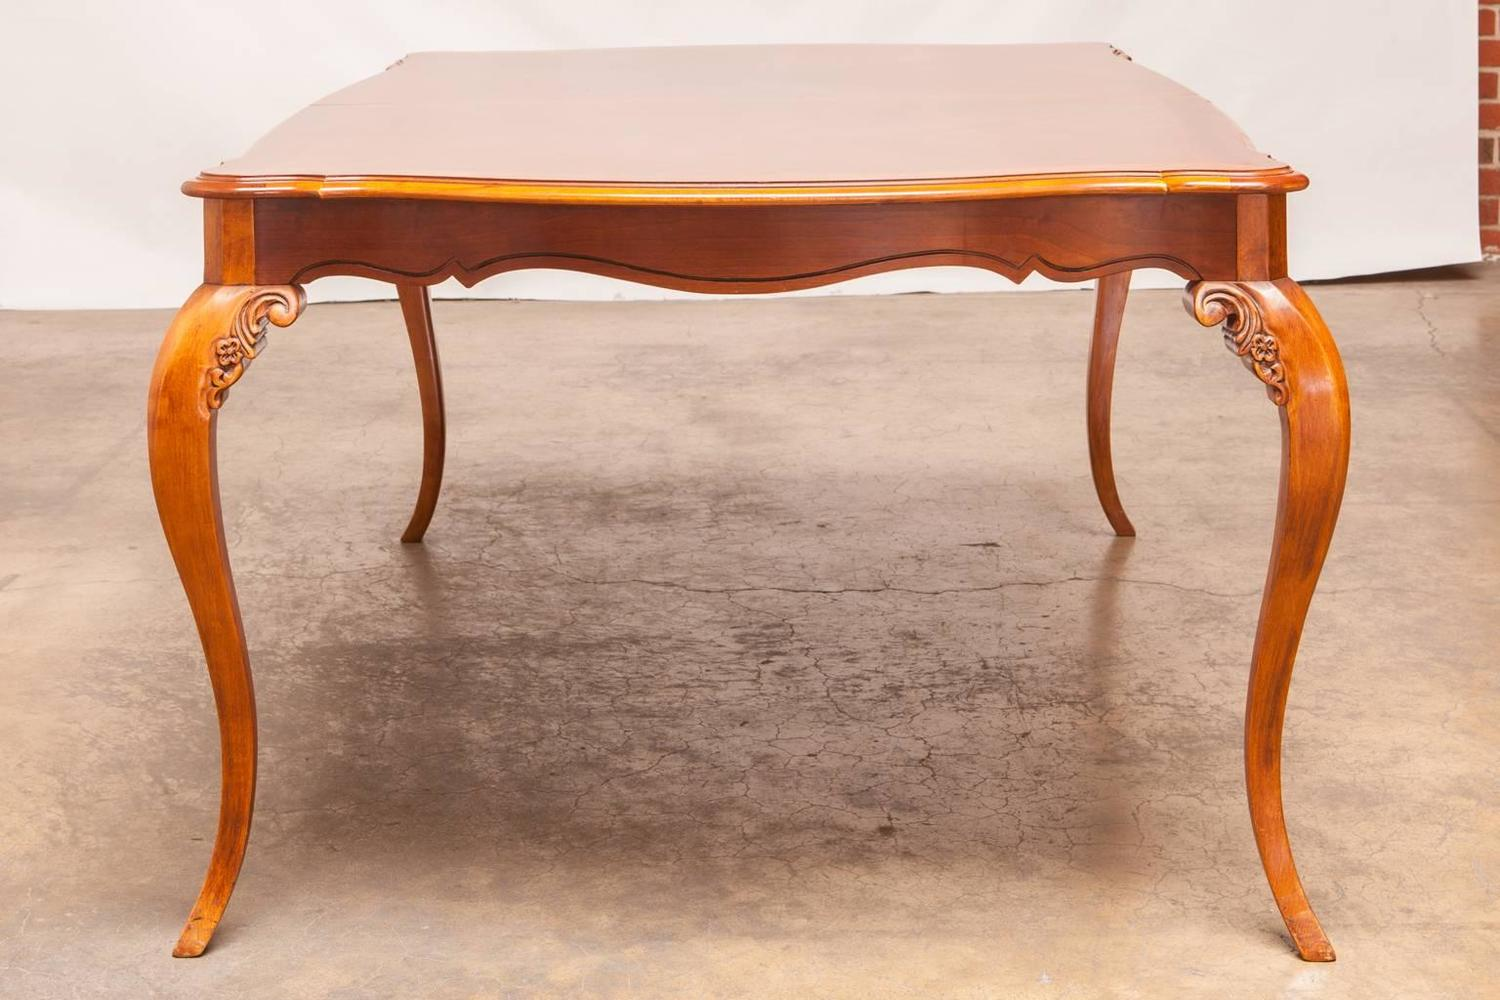 French Provincial Style Mahogany Dining Extension Table By